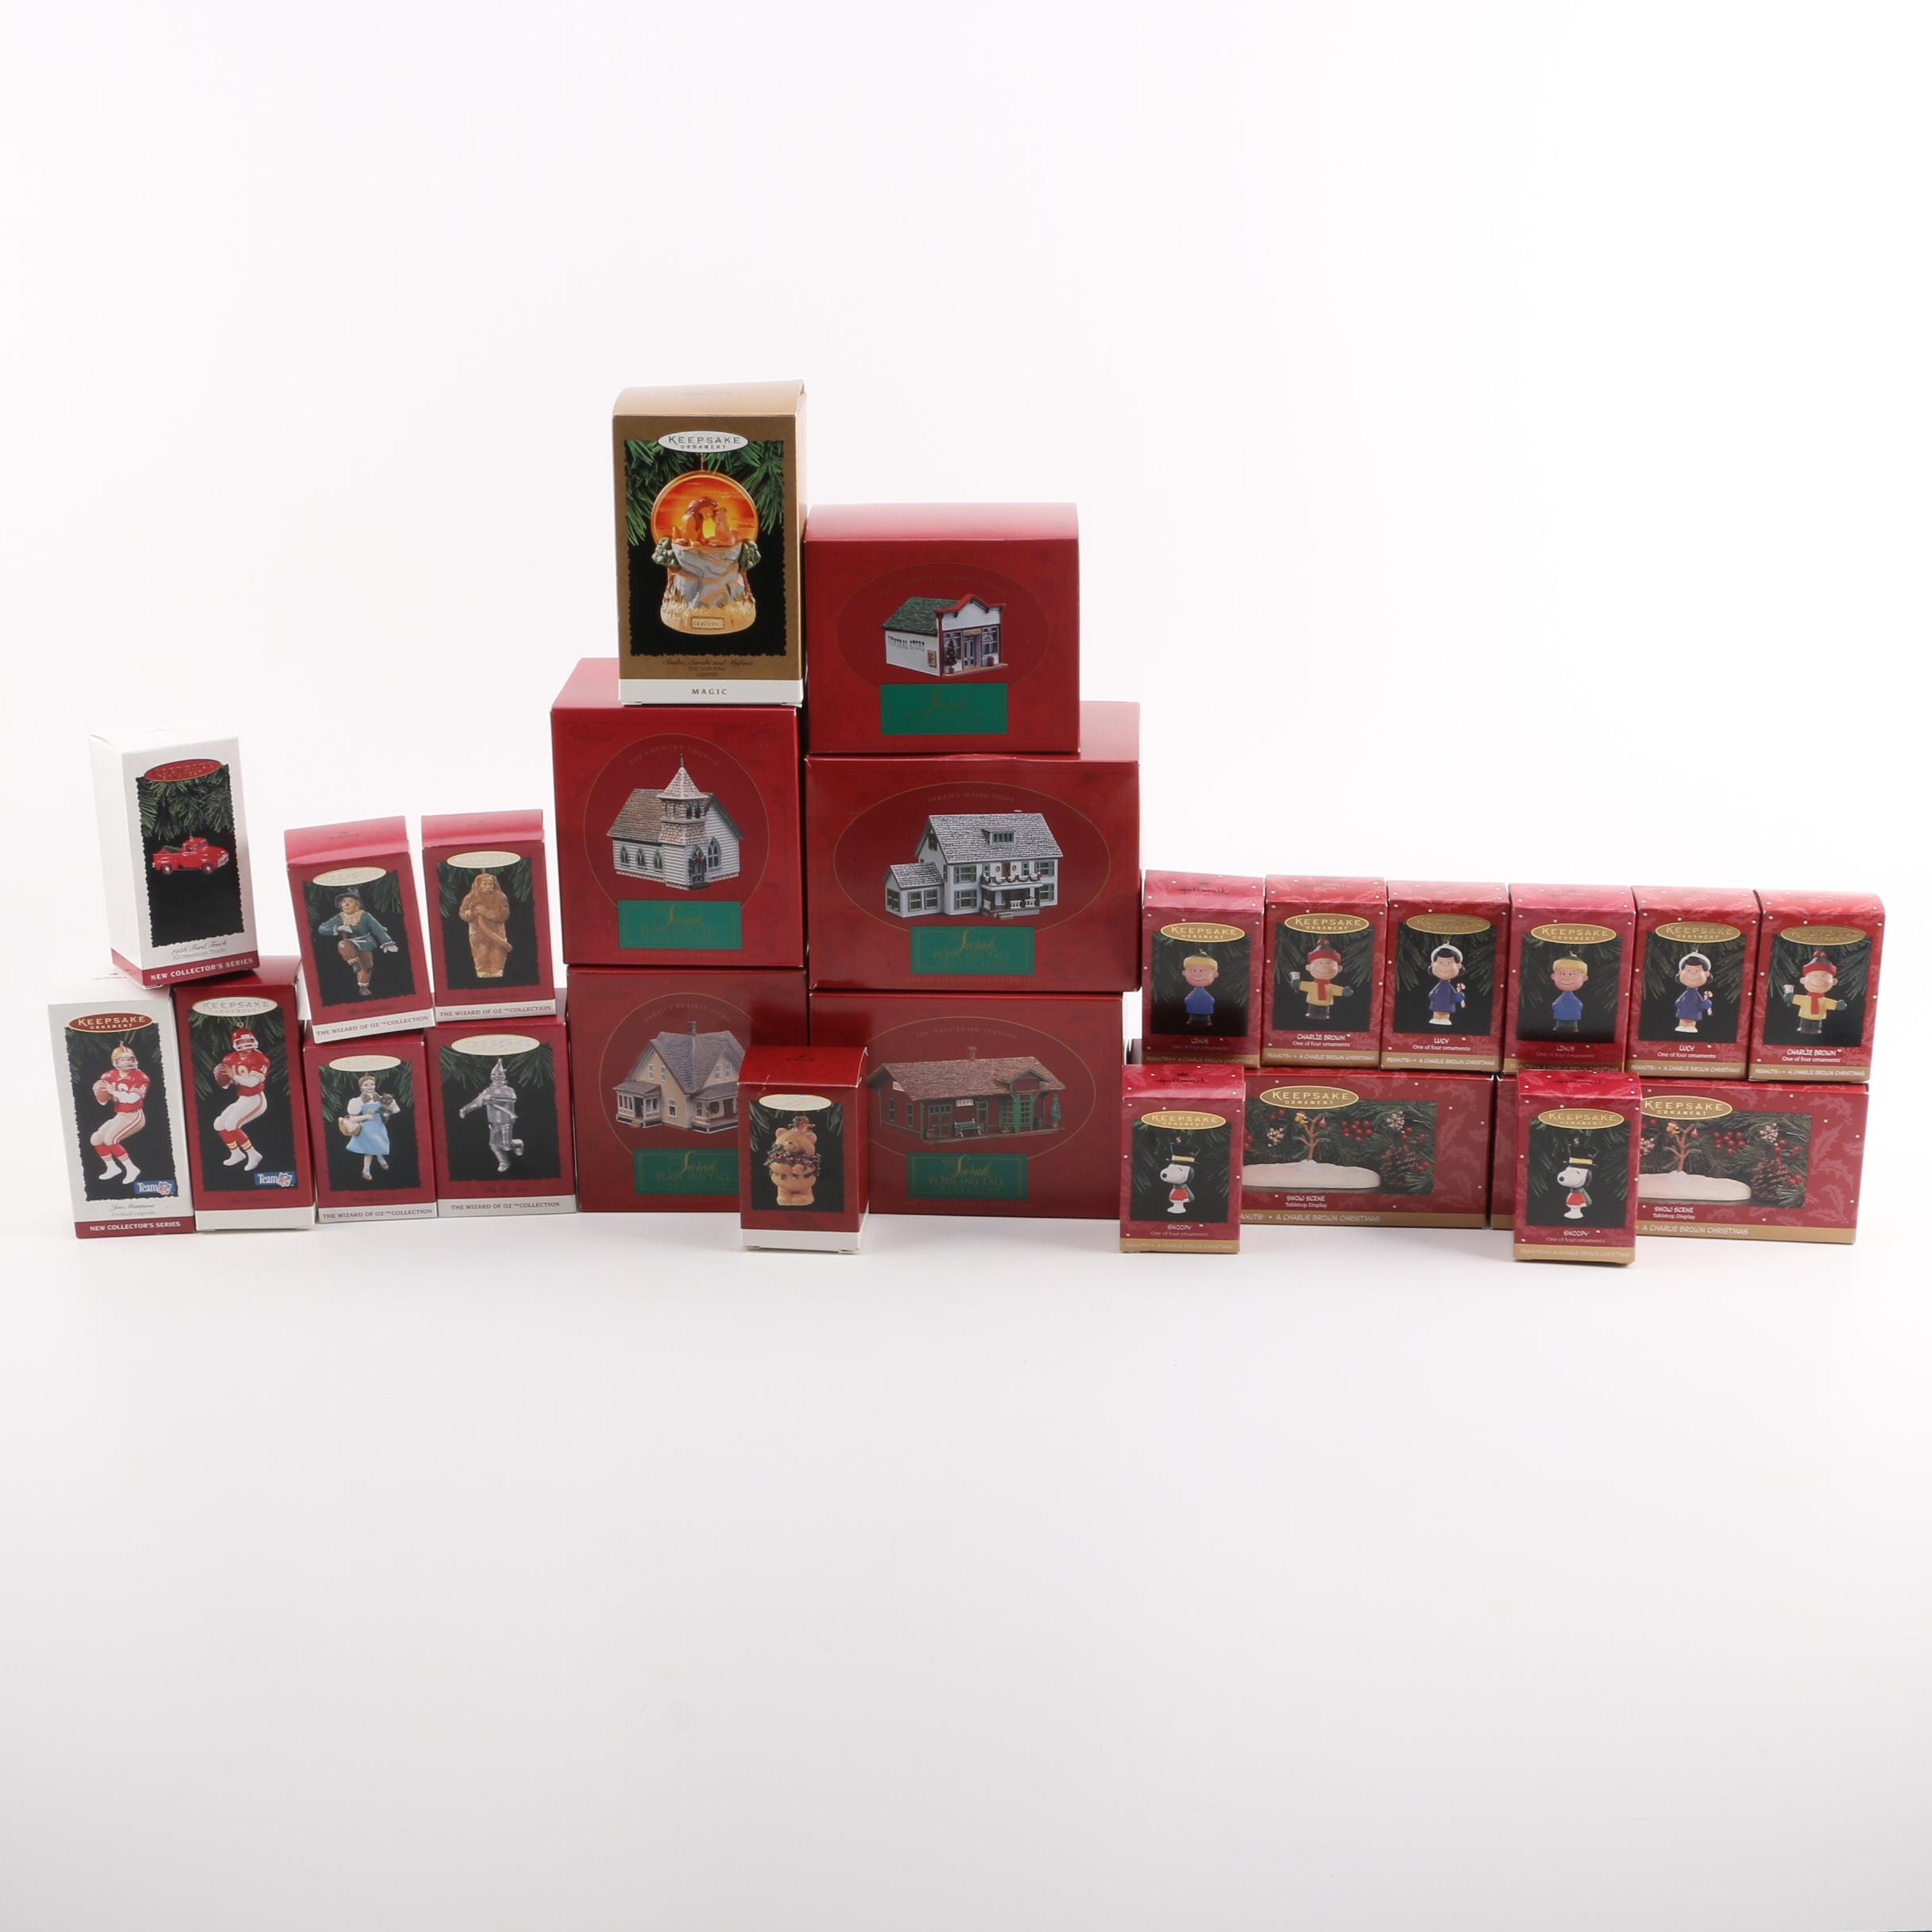 Christmas Decor and Ornaments Including Wizard of Oz Collection Ornaments